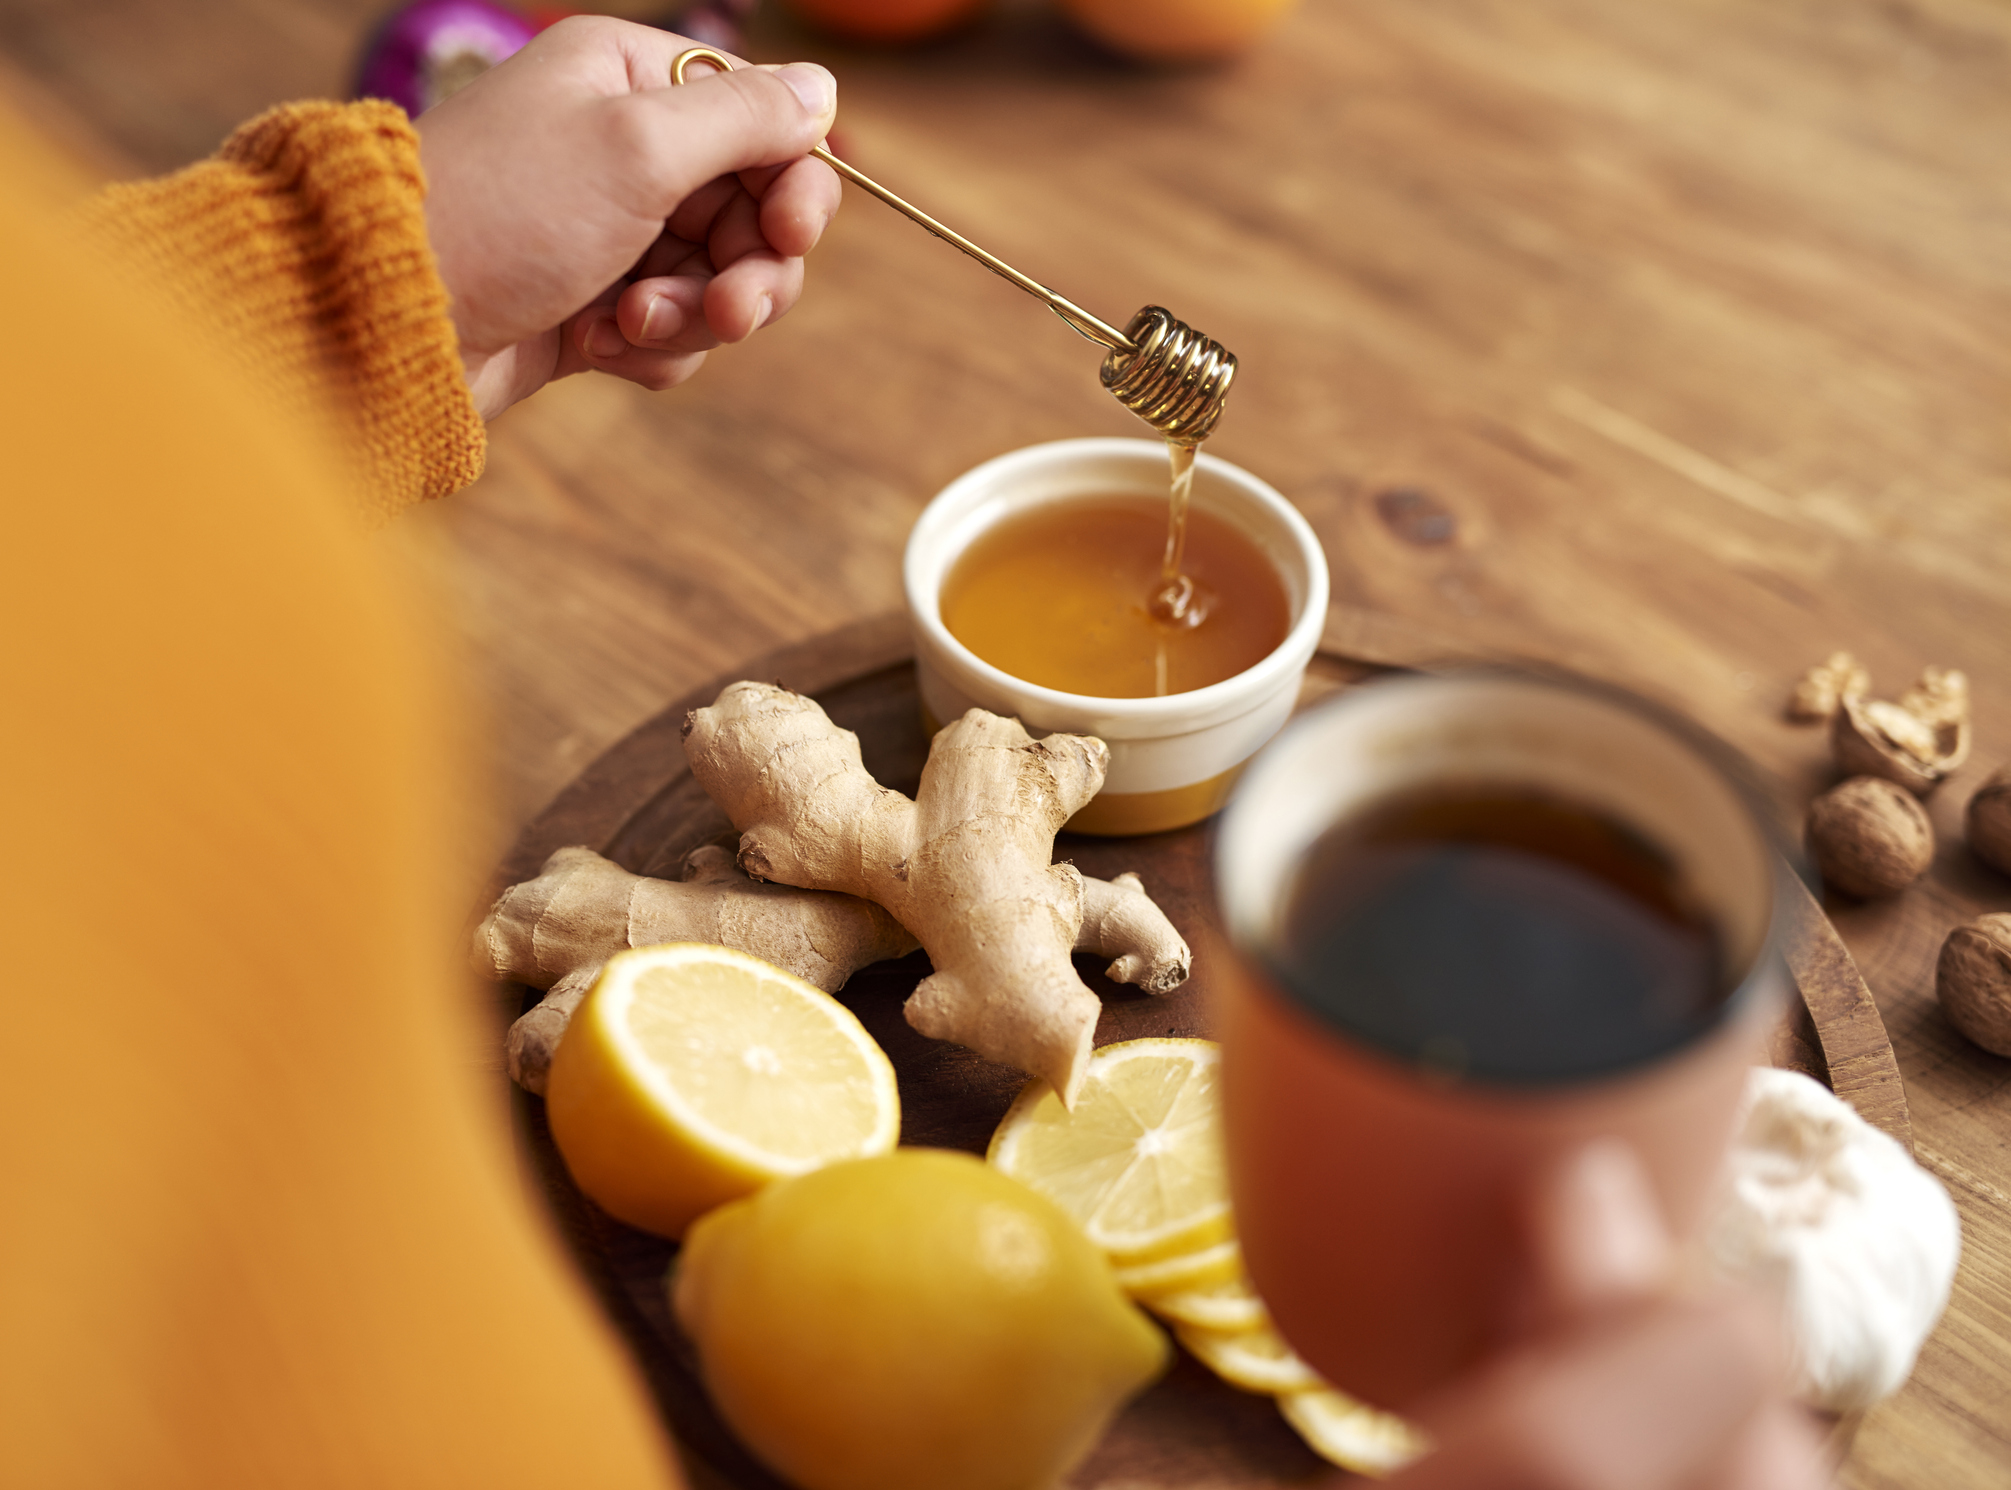 Ginger: The autoimmune super spice that may slow lupus